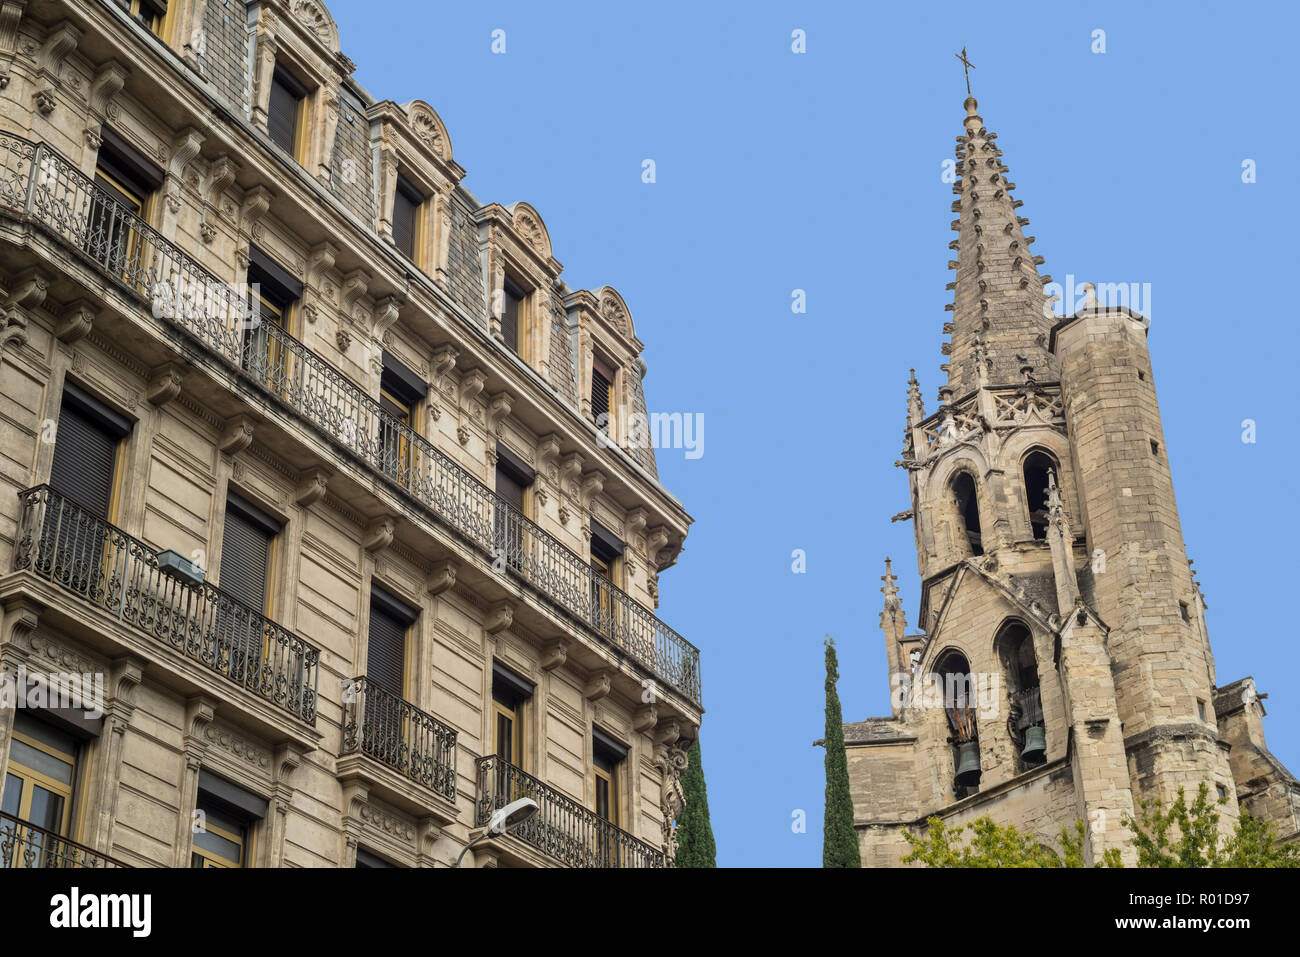 Belltower of the 14th-century Gothic Basilique Saint-Pierre d'Avignon / Basilica of St Peter, Avignon, Vaucluse, Provence-Alpes-Côte d'Azur, France - Stock Image